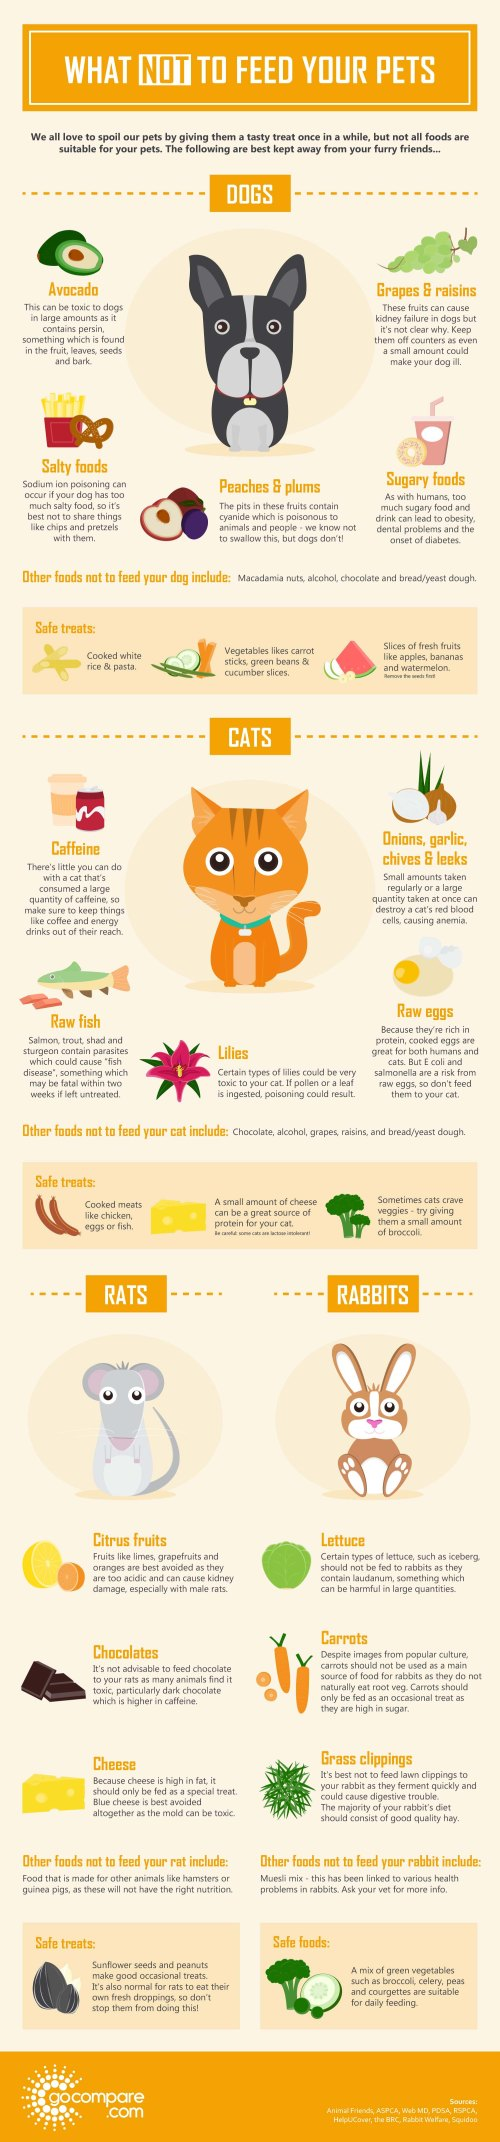 what-not-to-feed-your-pets-full